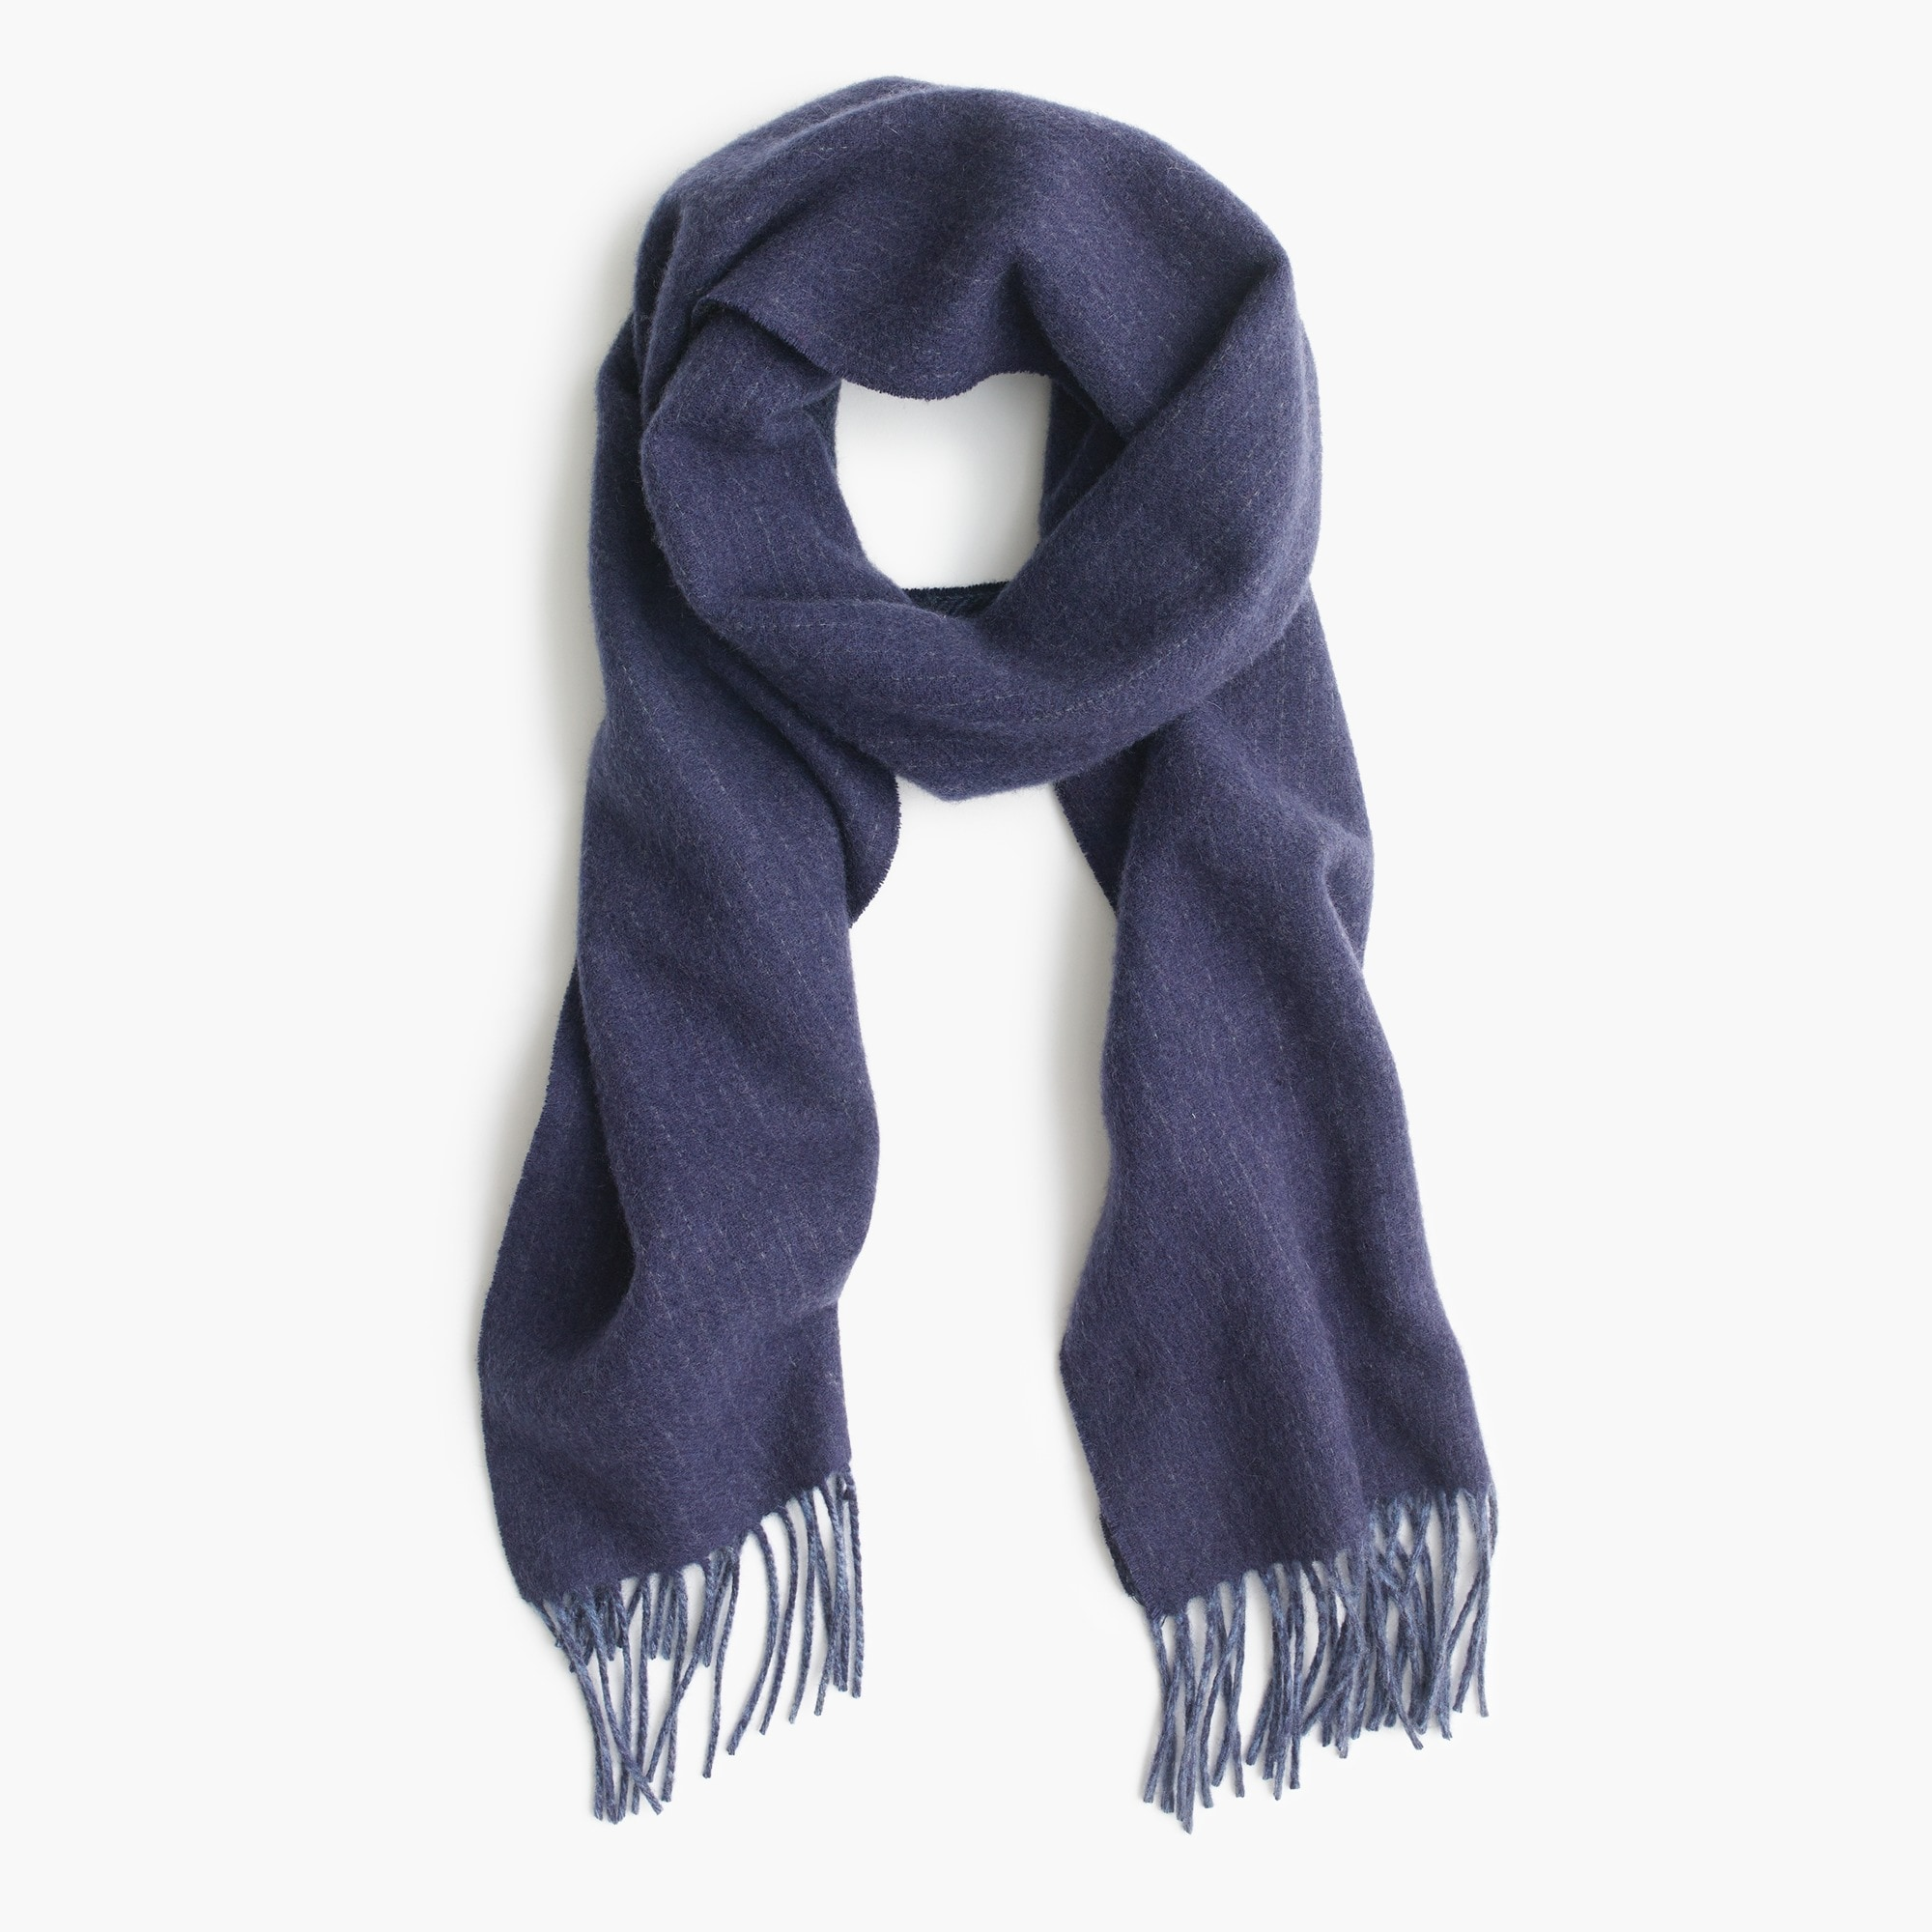 Image 2 for Dual-patterned cashmere scarf